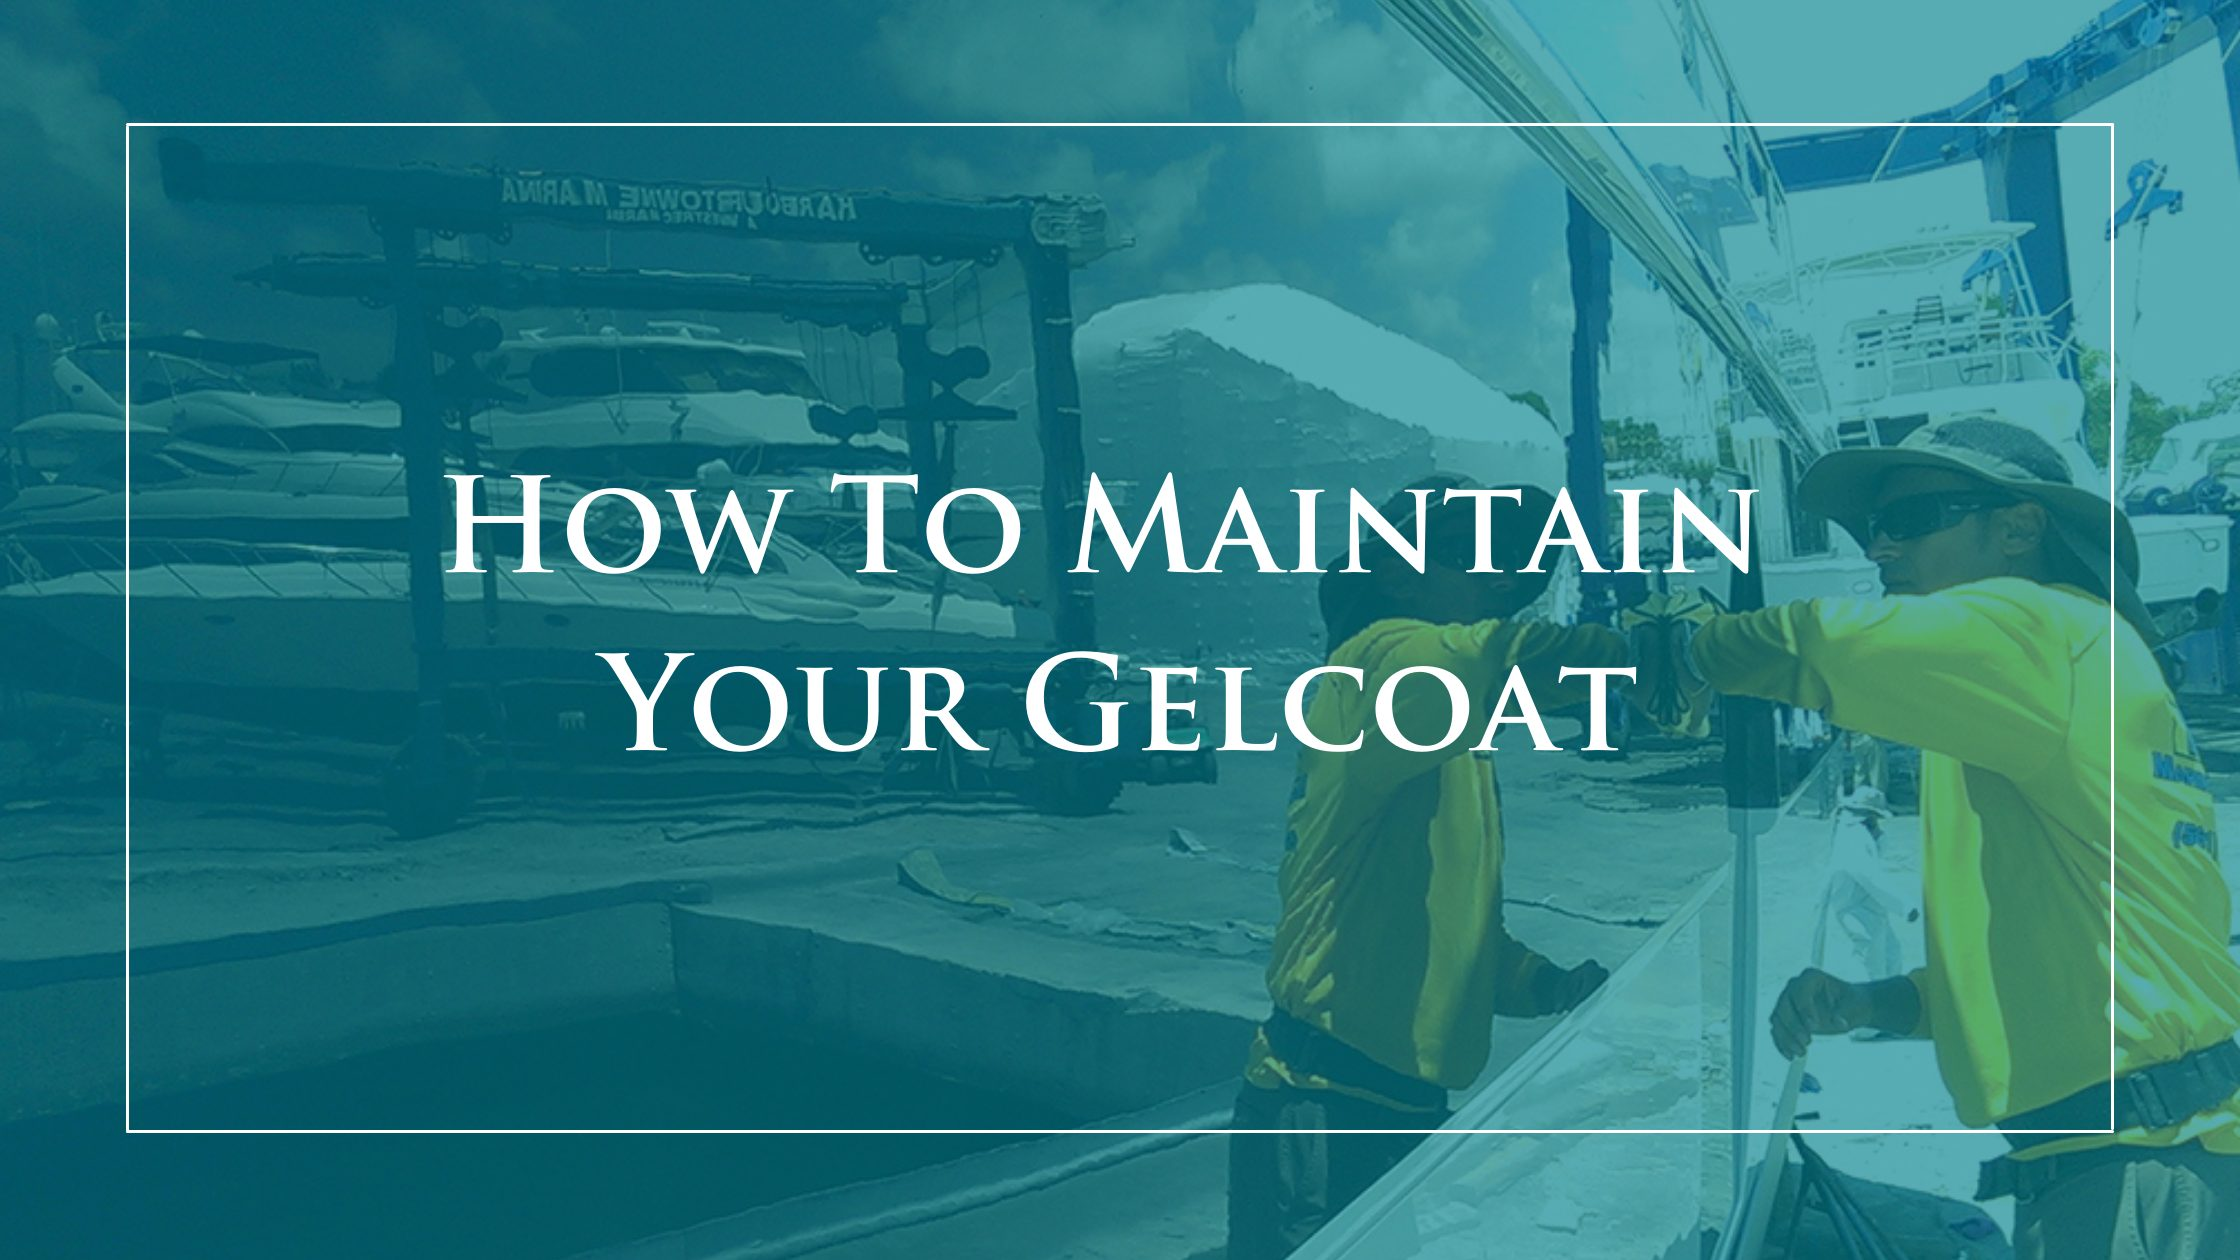 How to Maintain Your Gelcoat